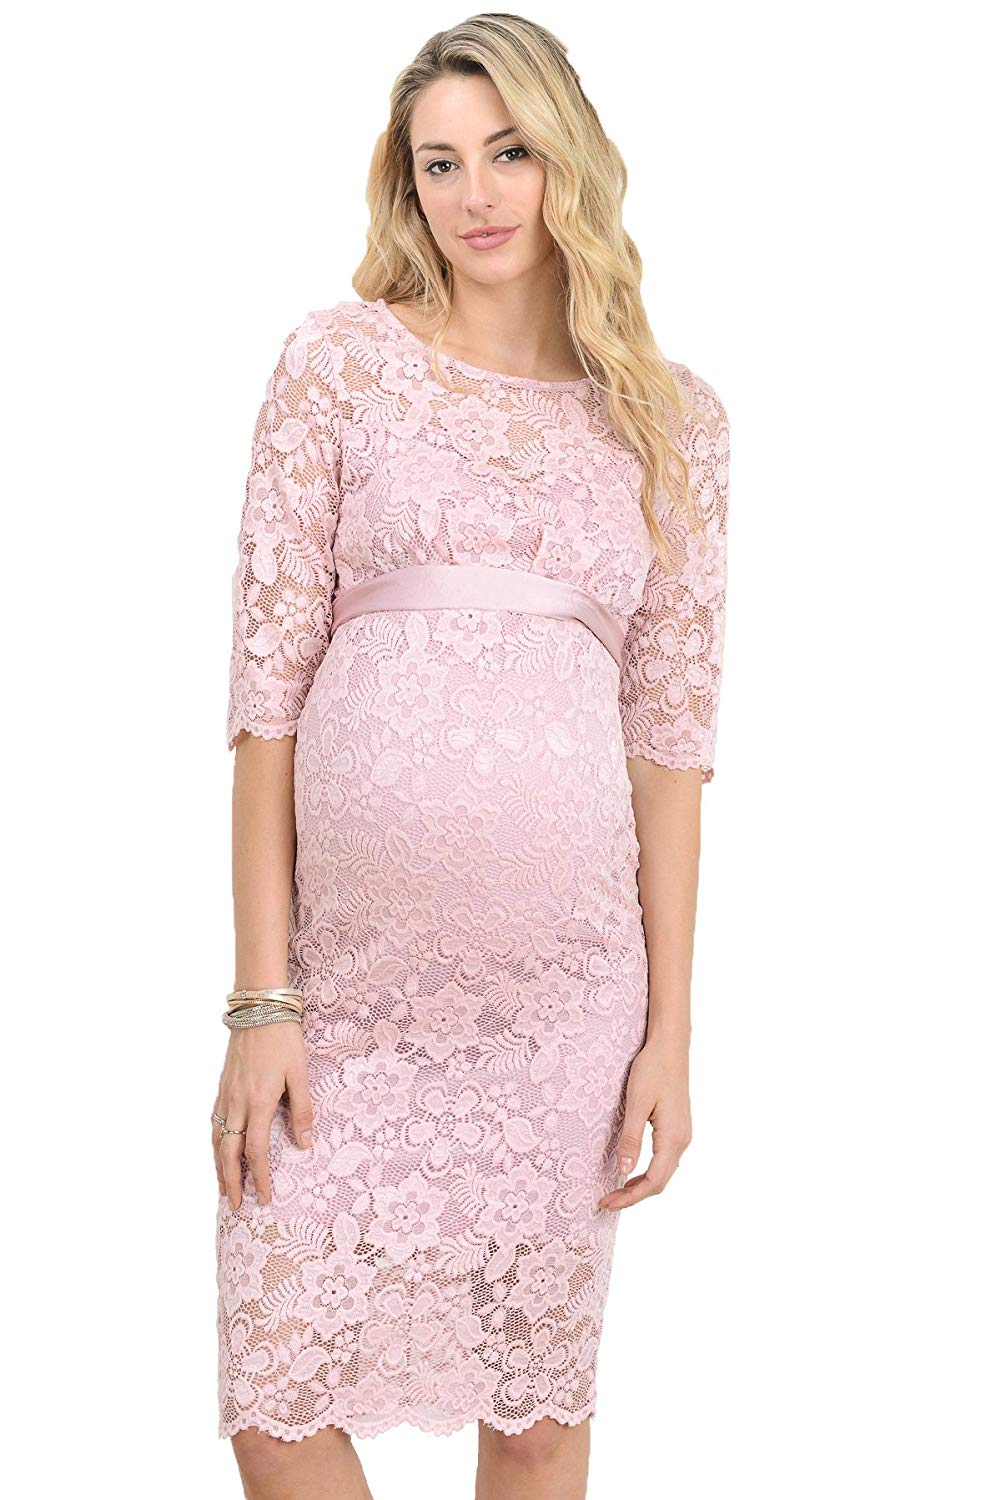 Pink Floral Lace Baby Shower Dress